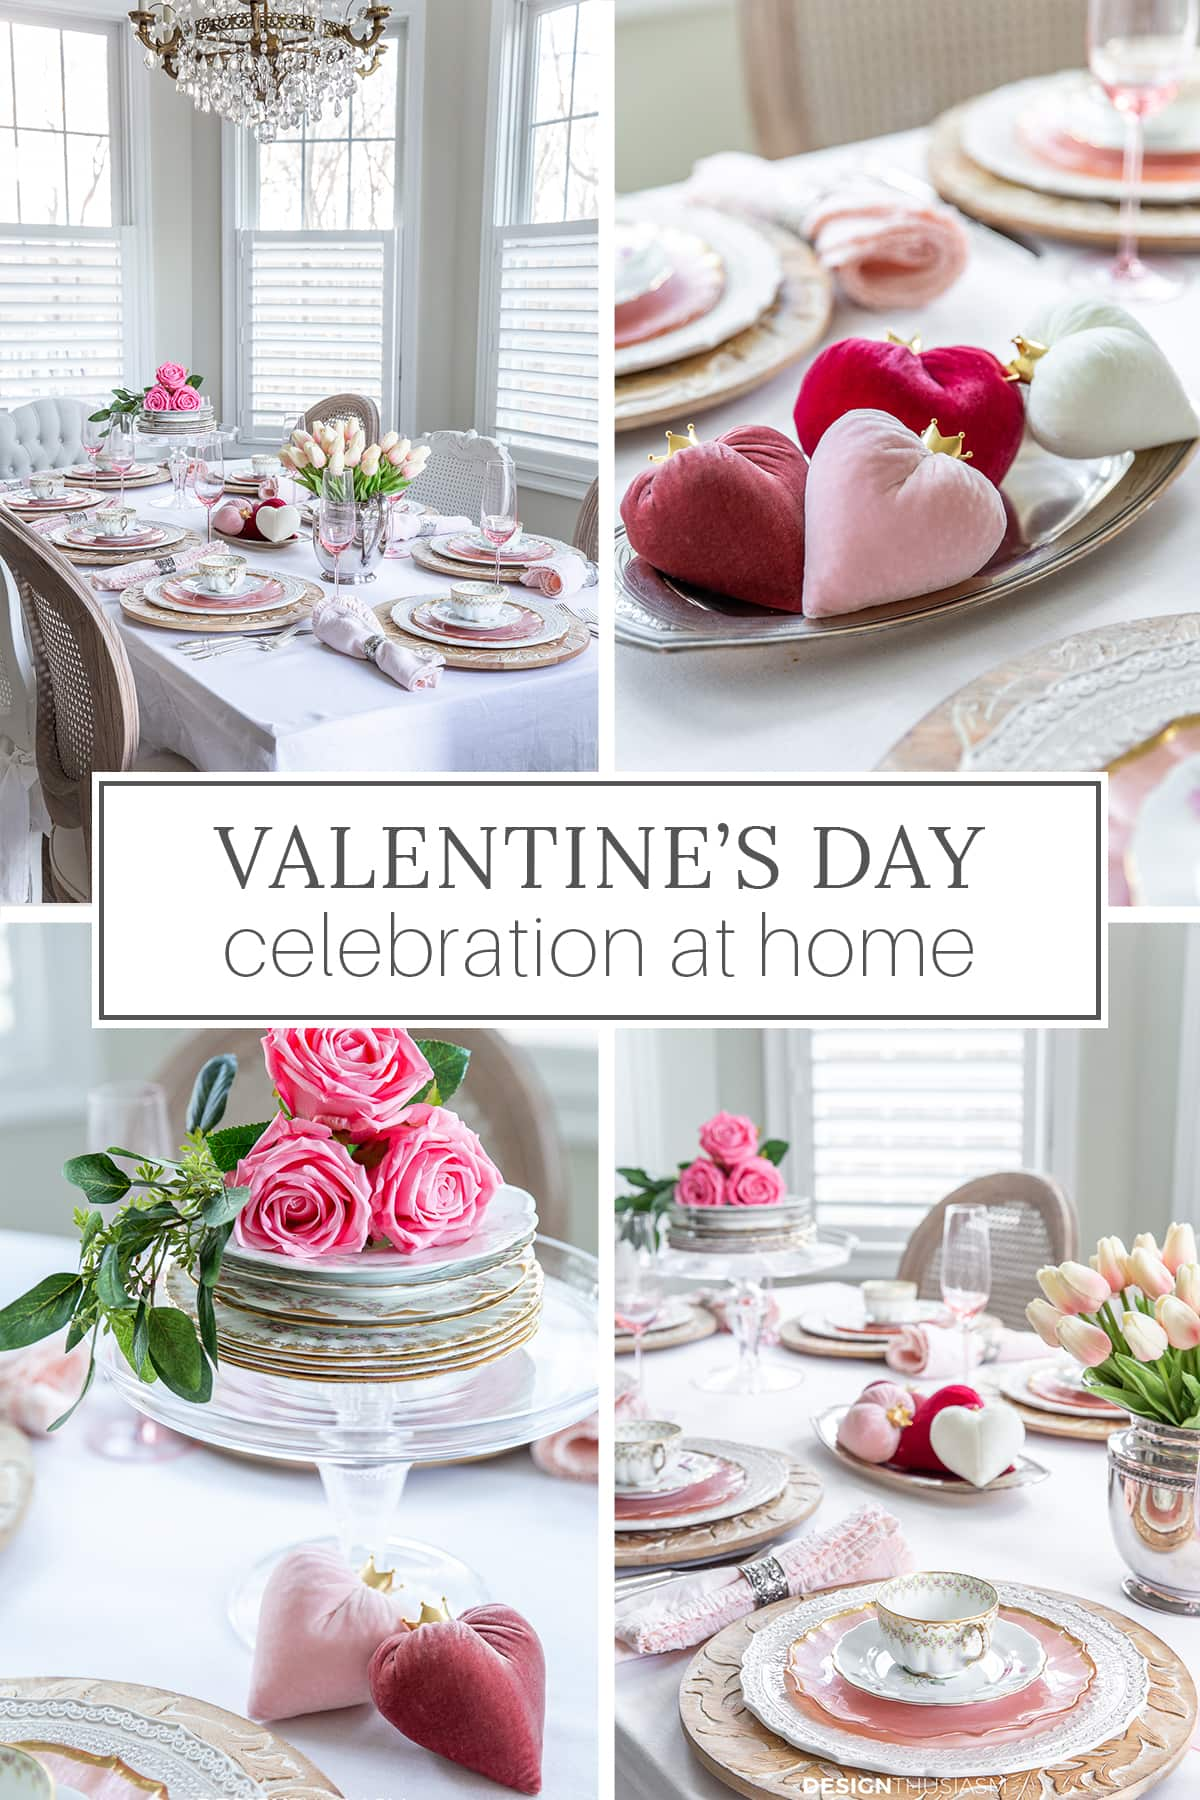 Valentines Day celebration at home